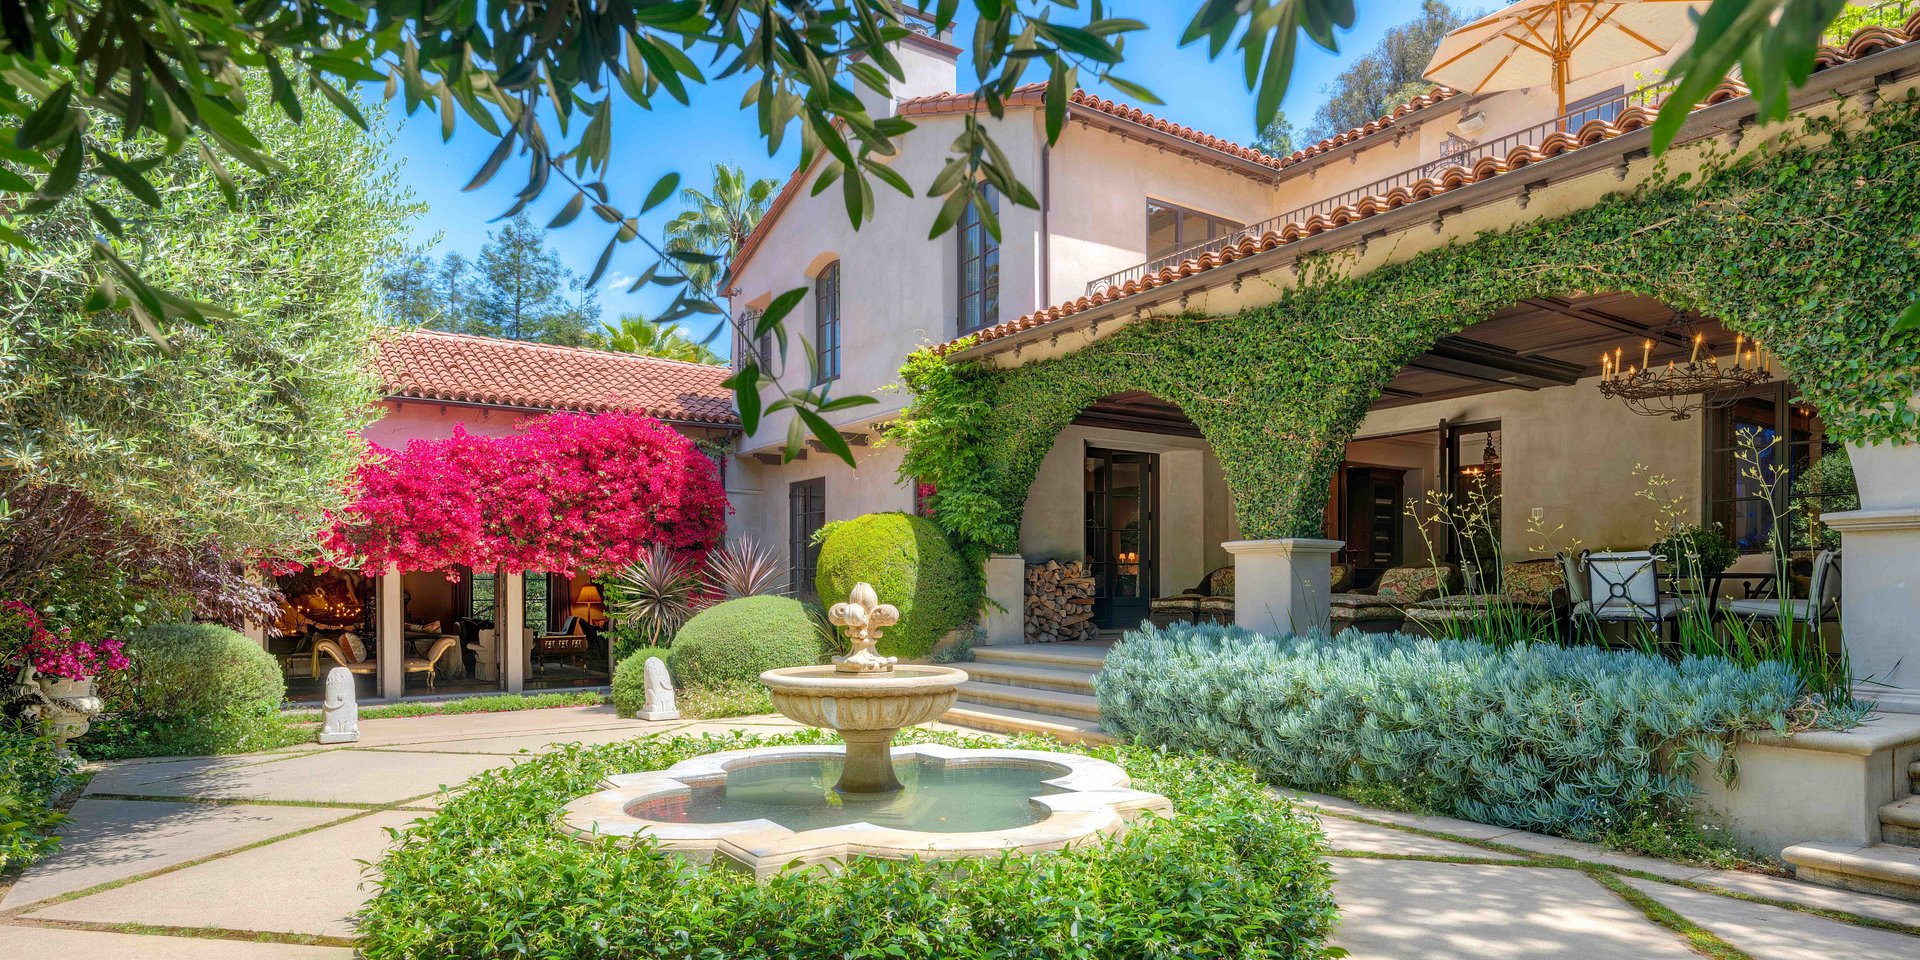 Coldwell Banker Residential Brokerage Lists Vincent Price's Former Los Angeles Property for $20.995 Million